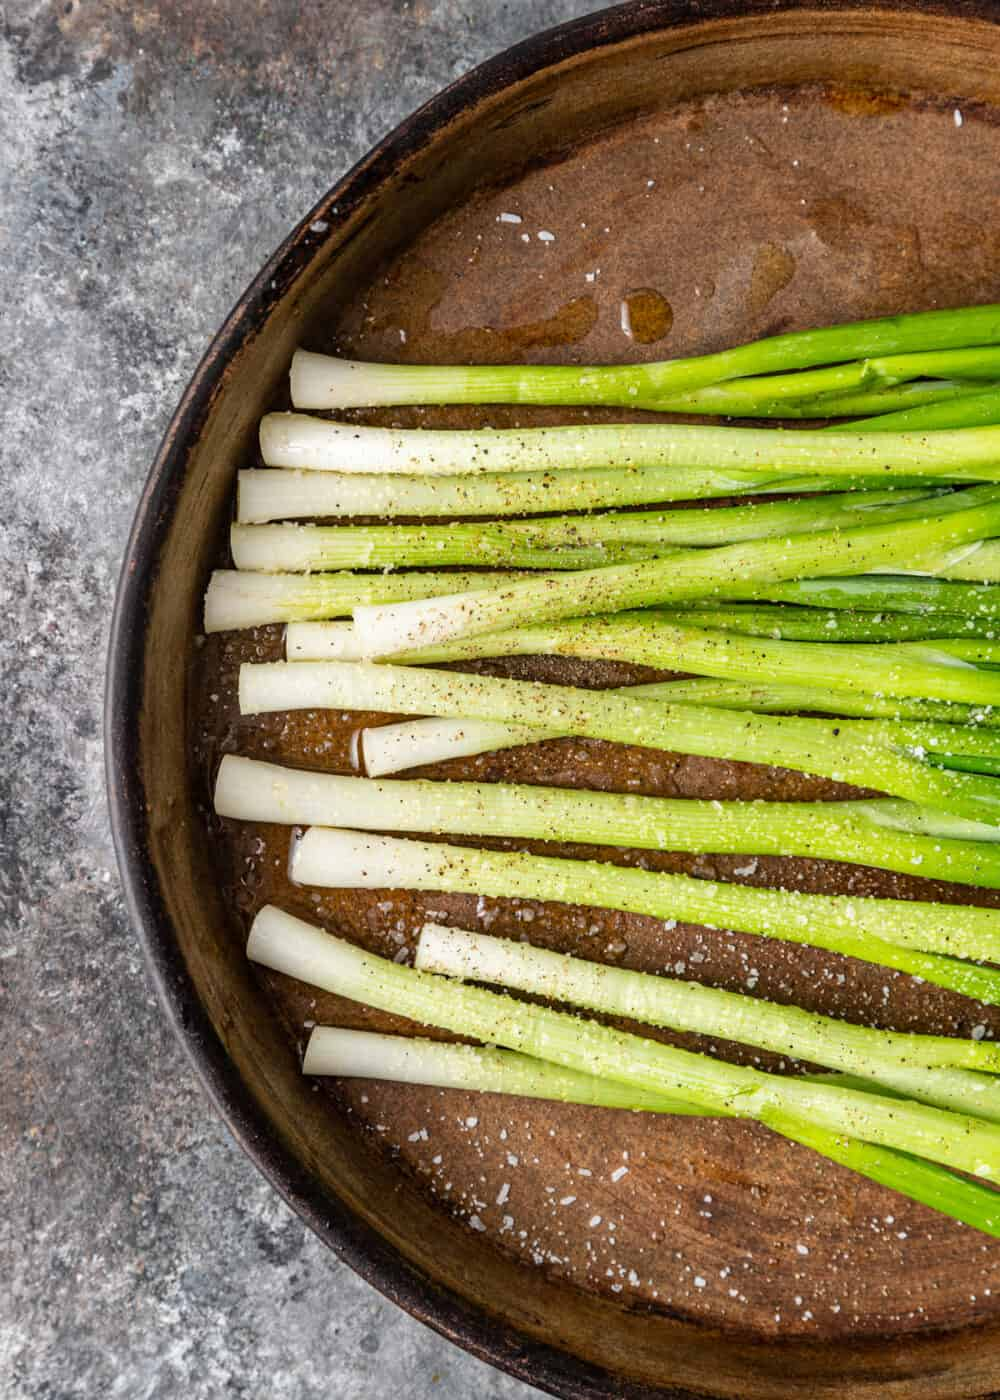 bunch of scallions sprinkled with seasoning on baking pan